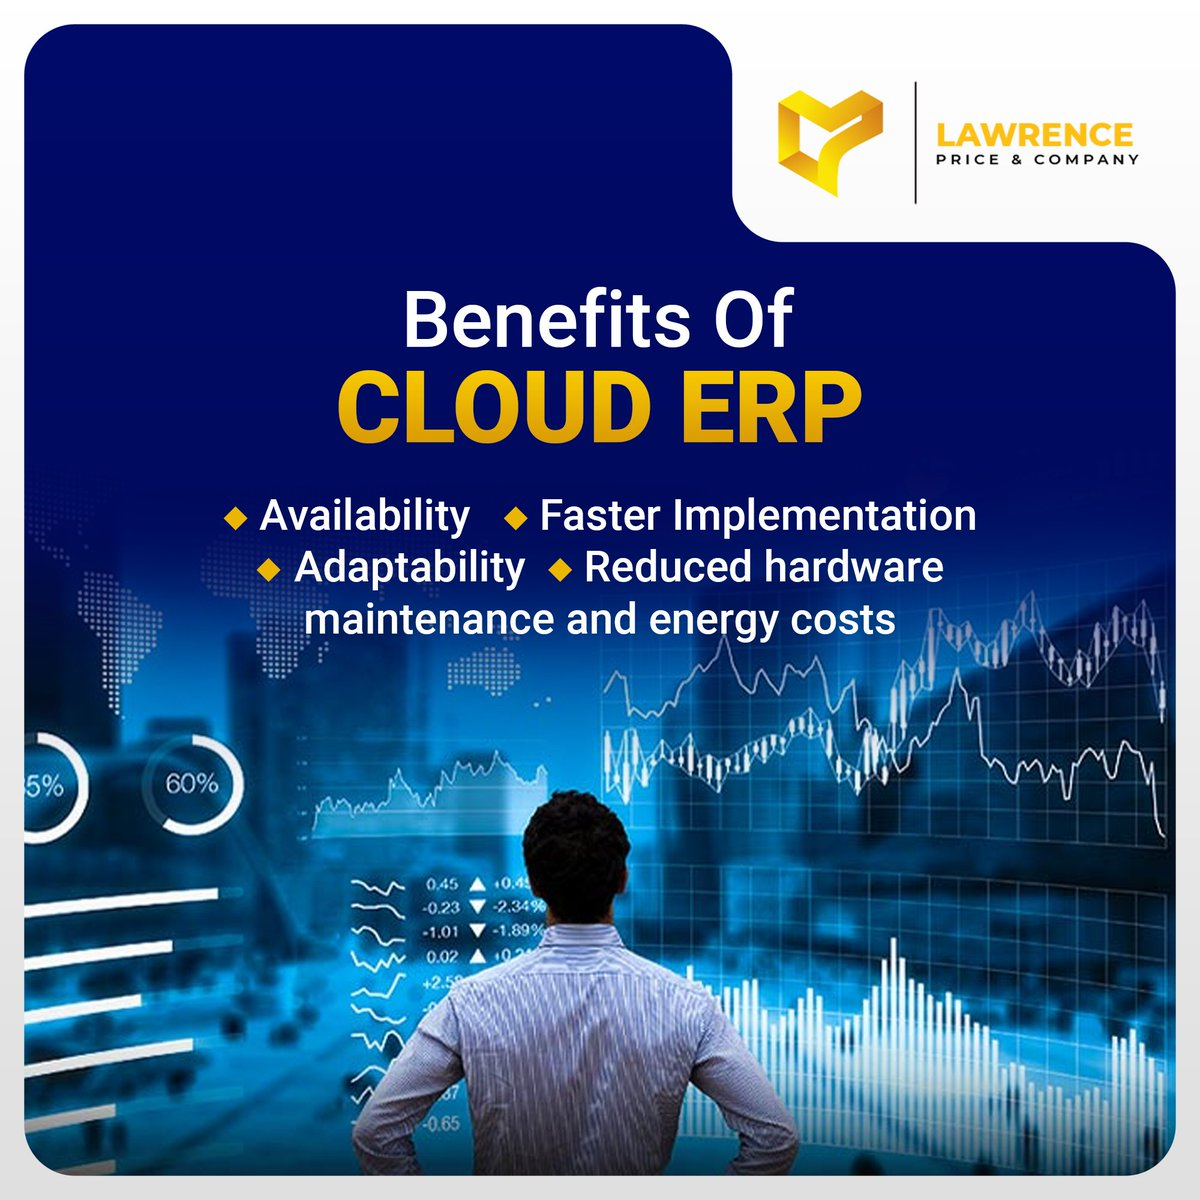 In today's world, customers expect faster turnaround times in the delivery of products and services, greater reliability, and lower costs. This has led to a greater demand for Cloud ERP solutions.  Here are some benefits of Cloud ERP solutions.  #Lptips #tuesdayvibe